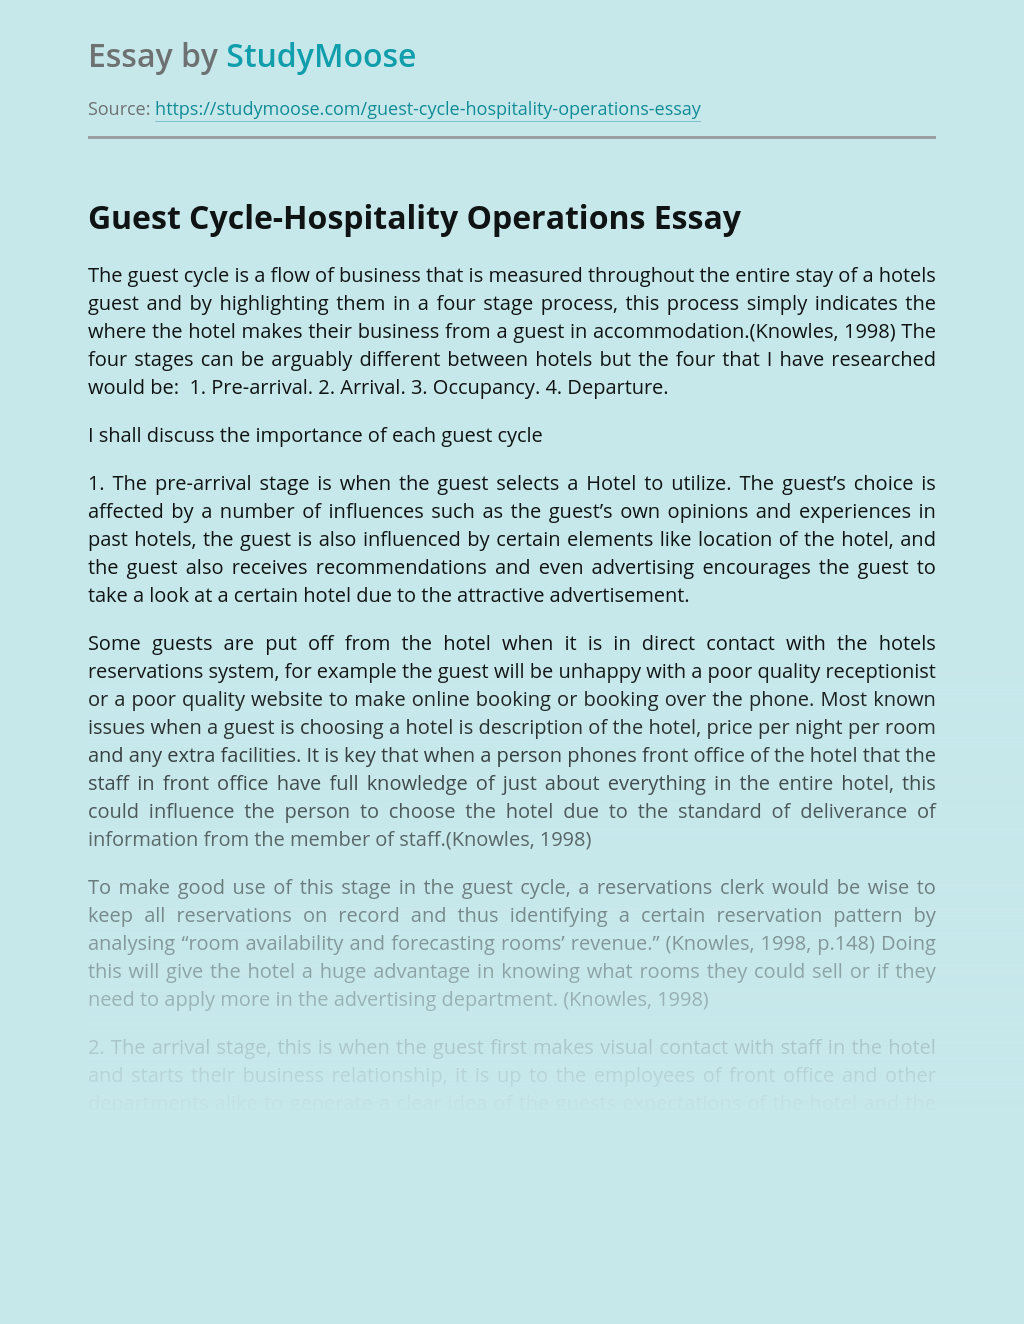 Guest Cycle-Hospitality Operations